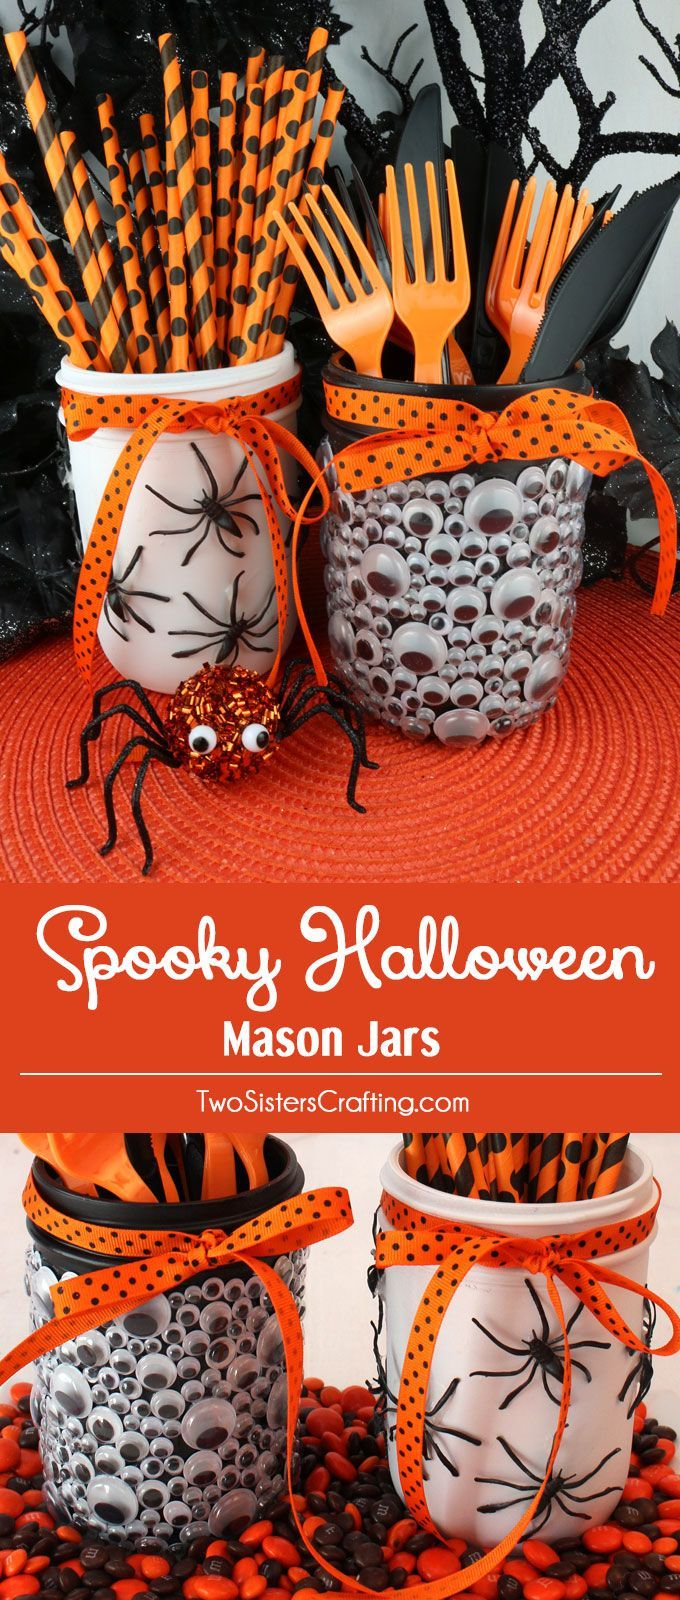 Best 25+ Halloween decorating ideas ideas on Pinterest | Halloween ...